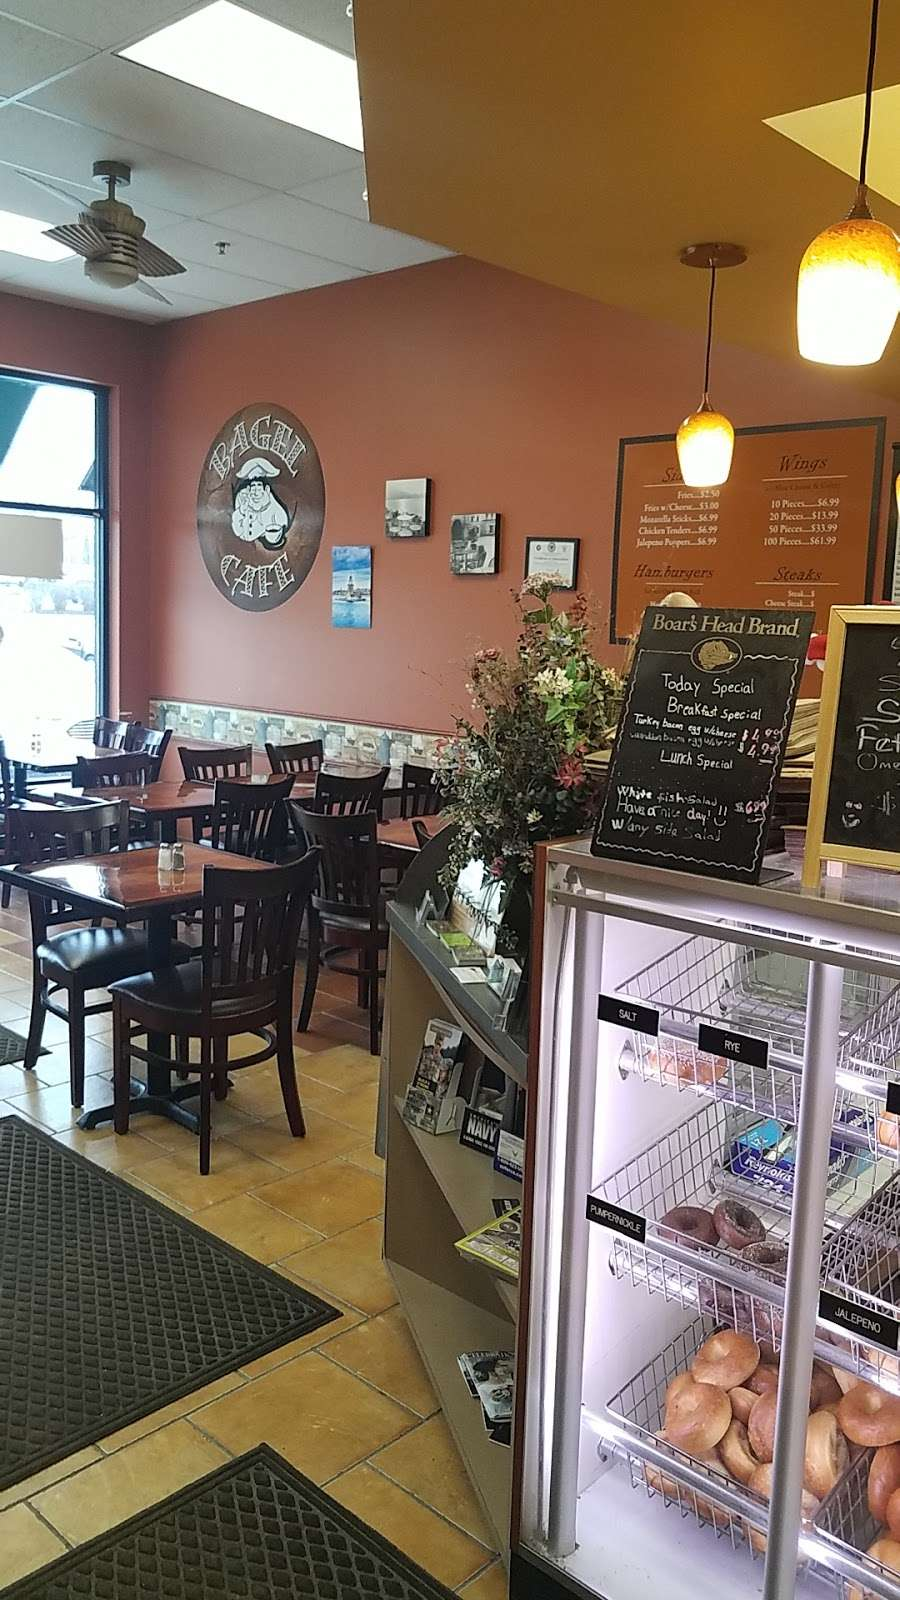 Delran Bagel Cafe - bakery  | Photo 9 of 10 | Address: 1361 S Fairview St, Delran, NJ 08075, USA | Phone: (856) 764-1112